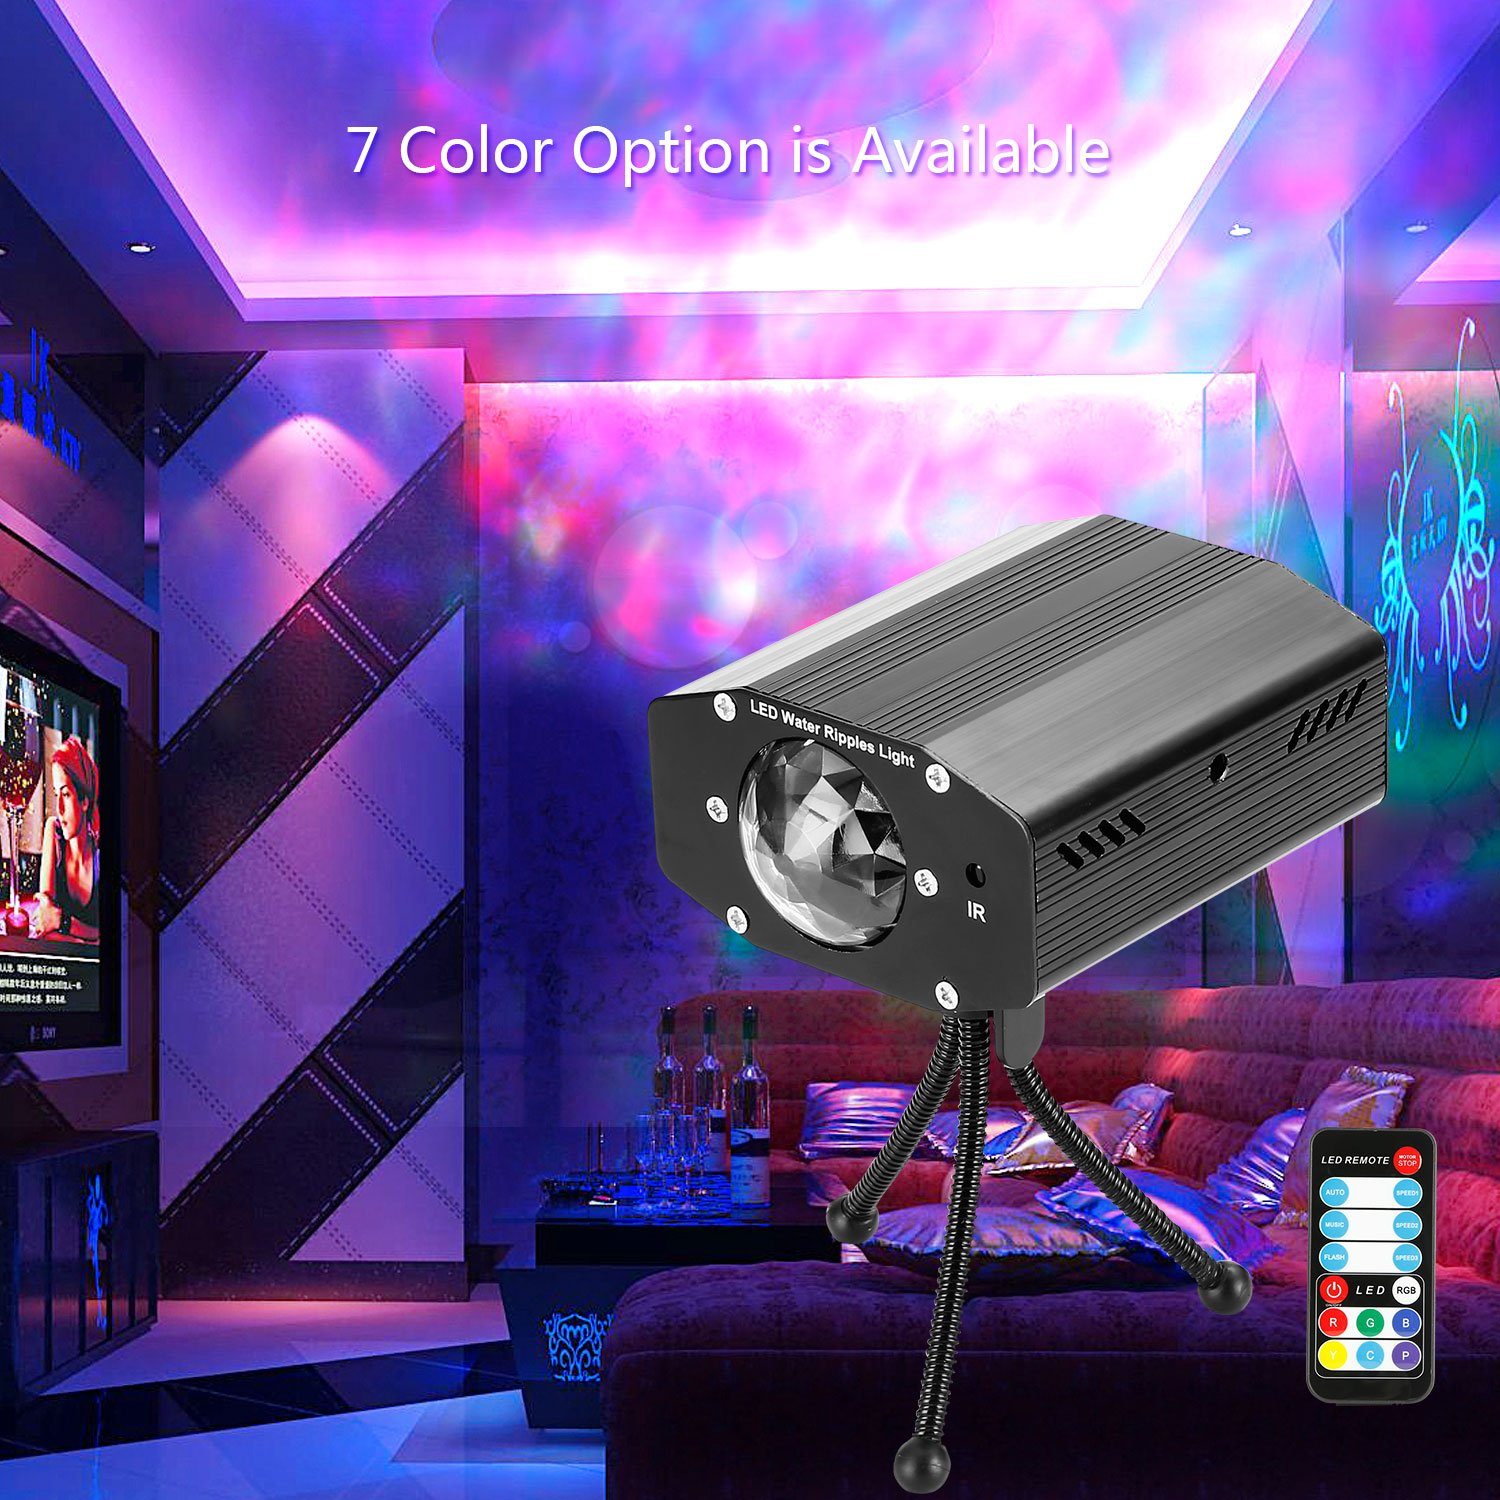 Portable DJ Party Lights 7 Color Water Waves Ripple Dance Stage Lighting  Projector Sound Music Activated with Remote For Night Party KTV Club Room